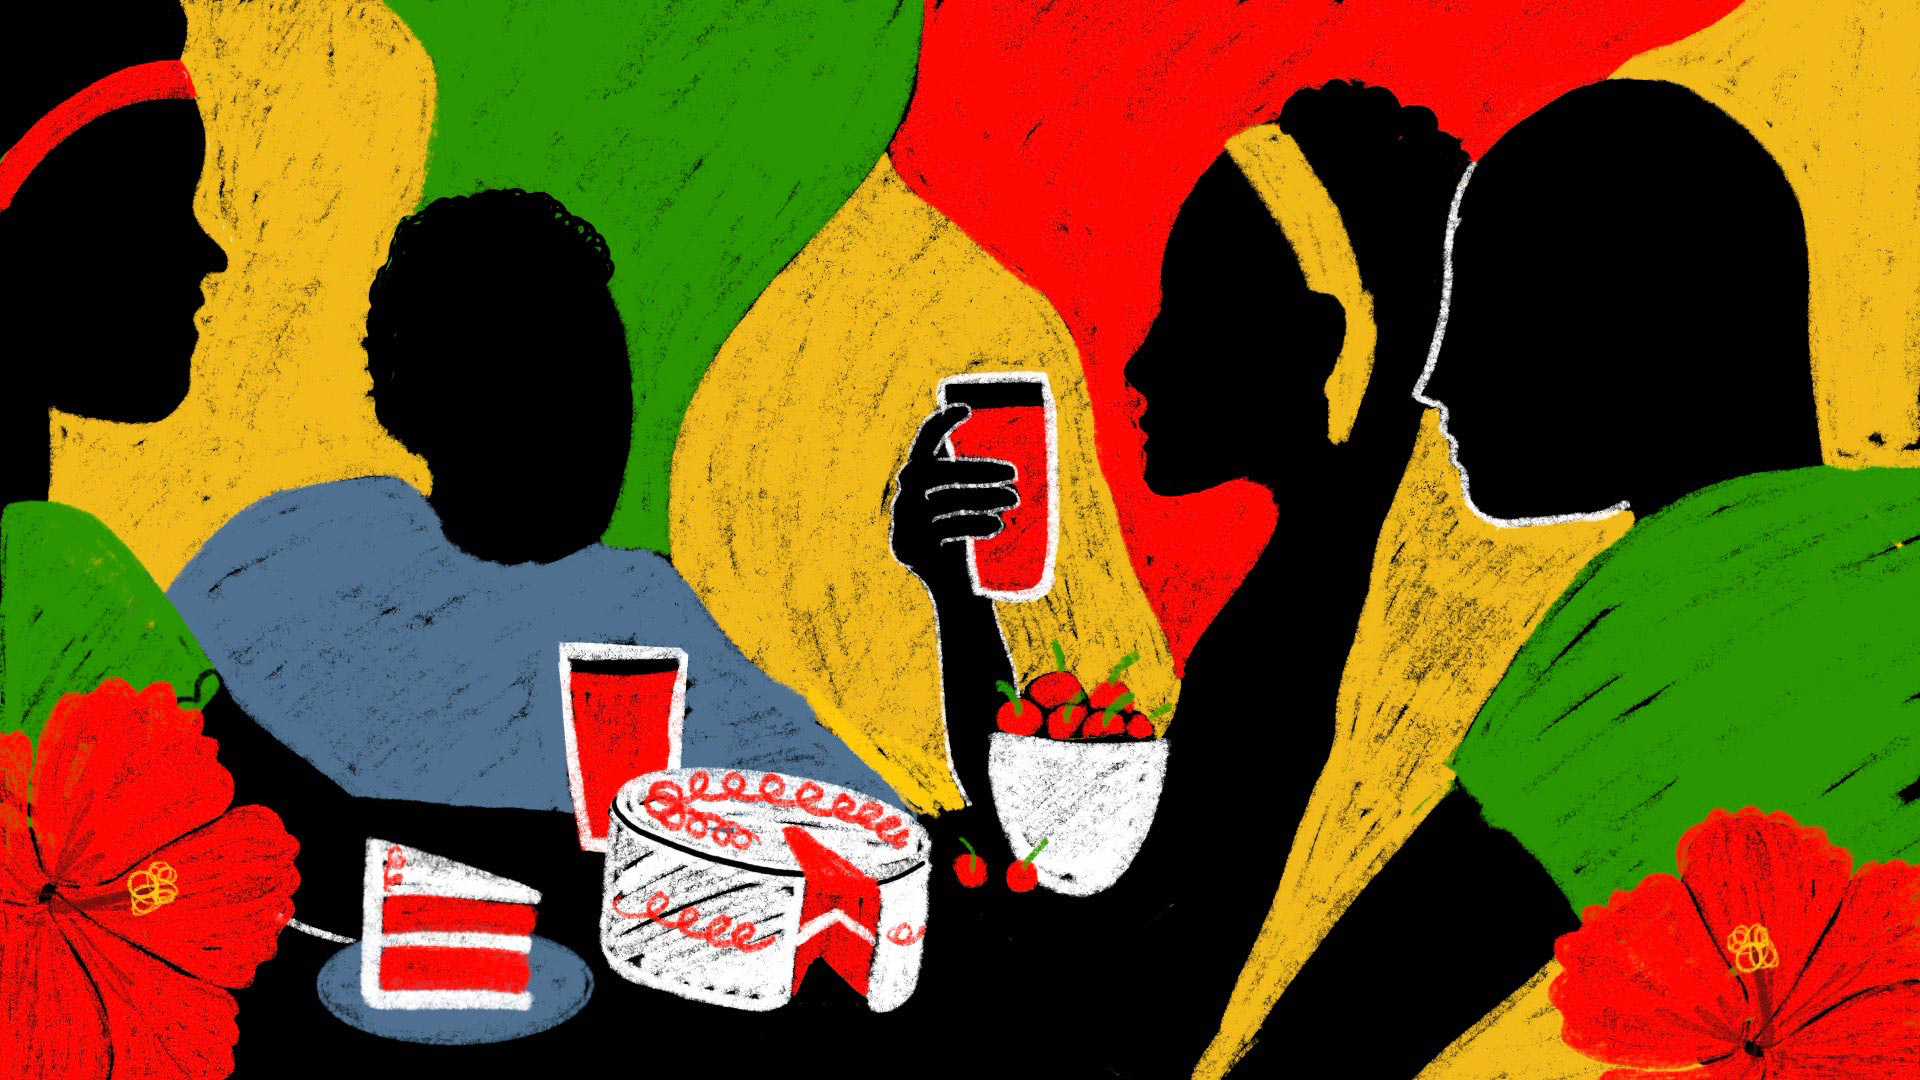 Juneteenth celebrations, which commemorate the day the country's last enslaved people were freed in 1865, often feature red foods and beverages, like red velvet cake, cherries and red soda. (Illustration by Valerie Morgan)